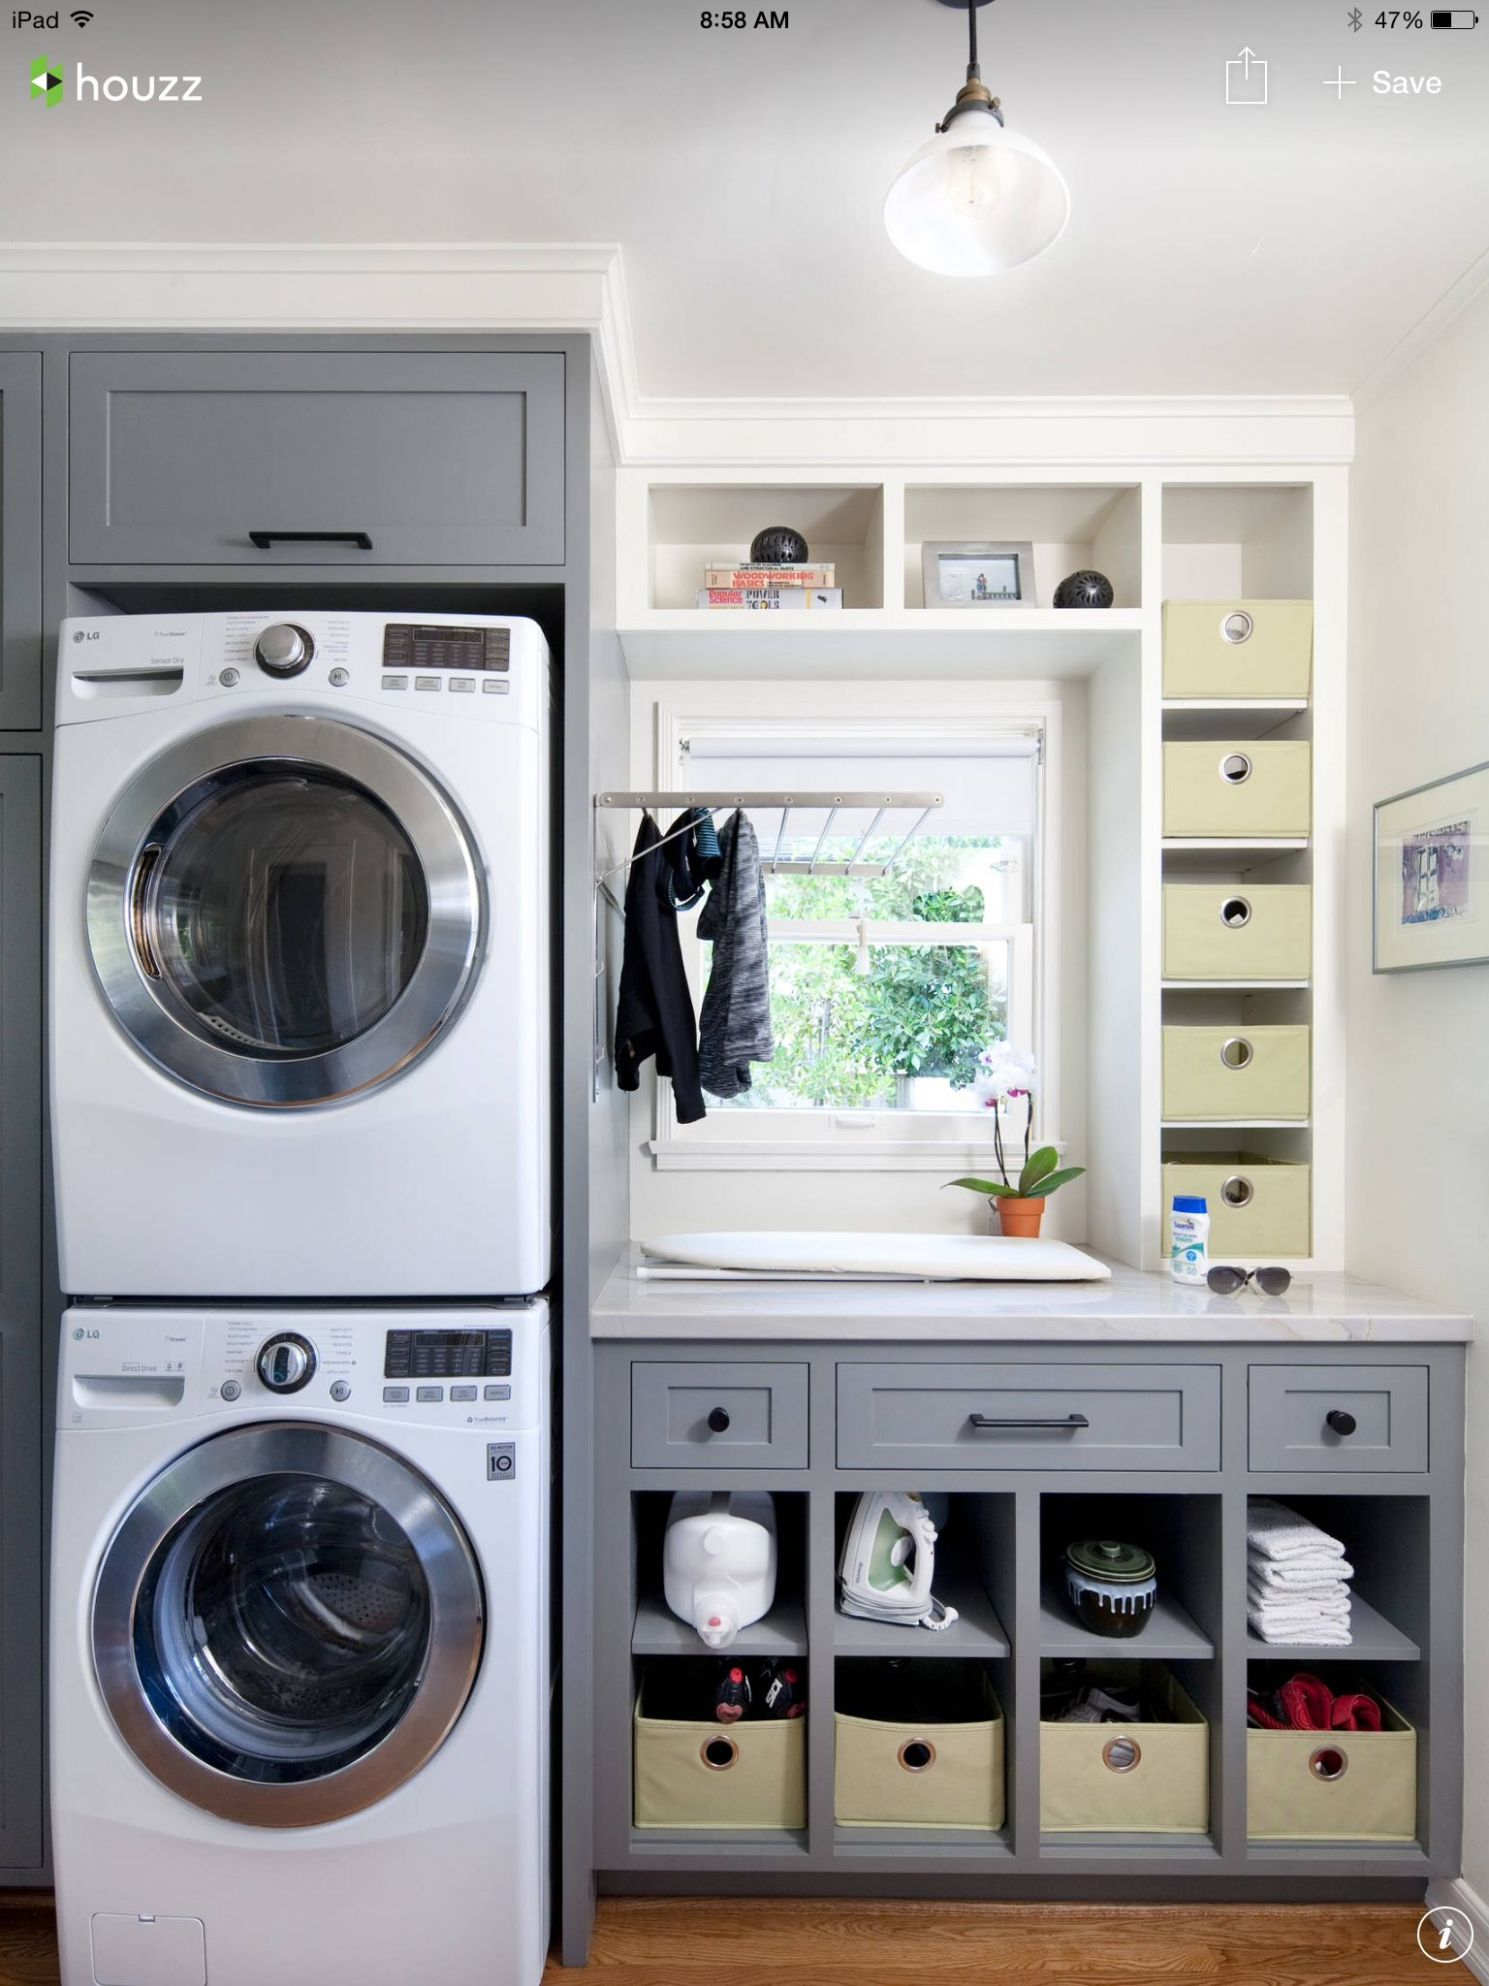 Laundry room- love the pull down drying rack and ironing board ...